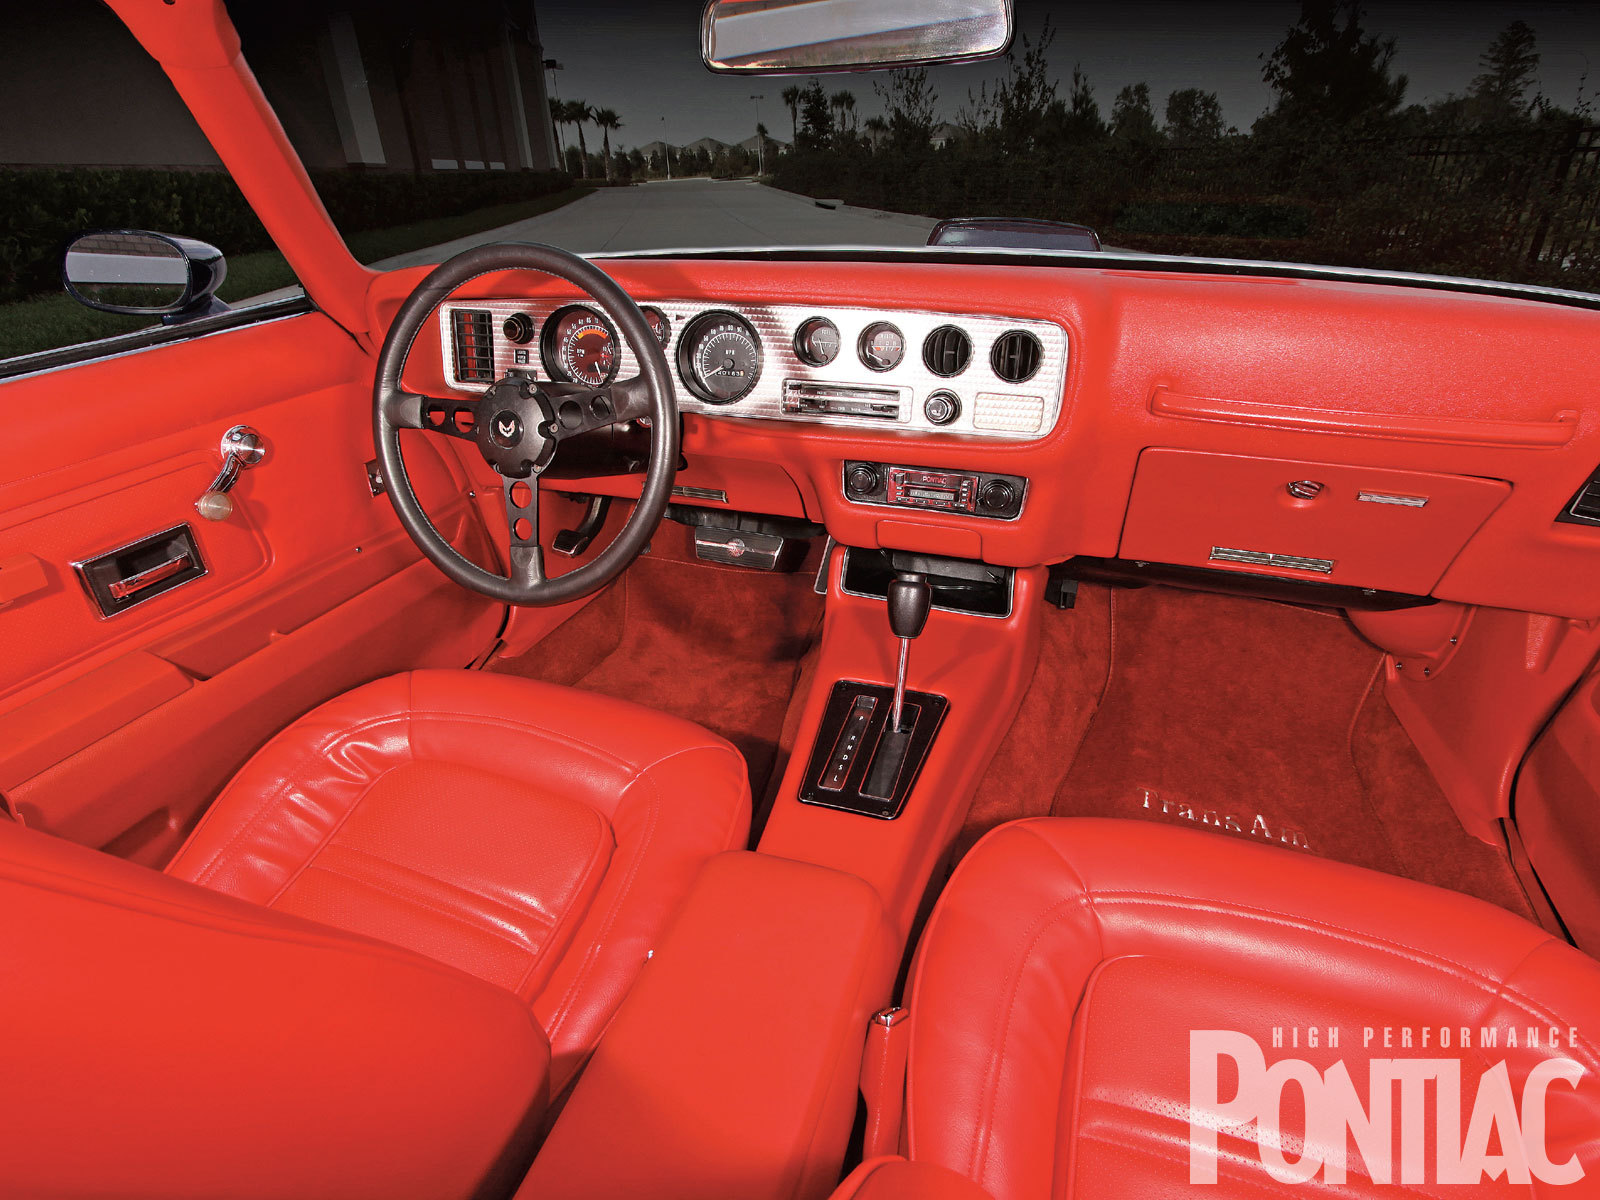 Primary image for 1974 pontiac trans am interior red | 24 X 36 inch poster